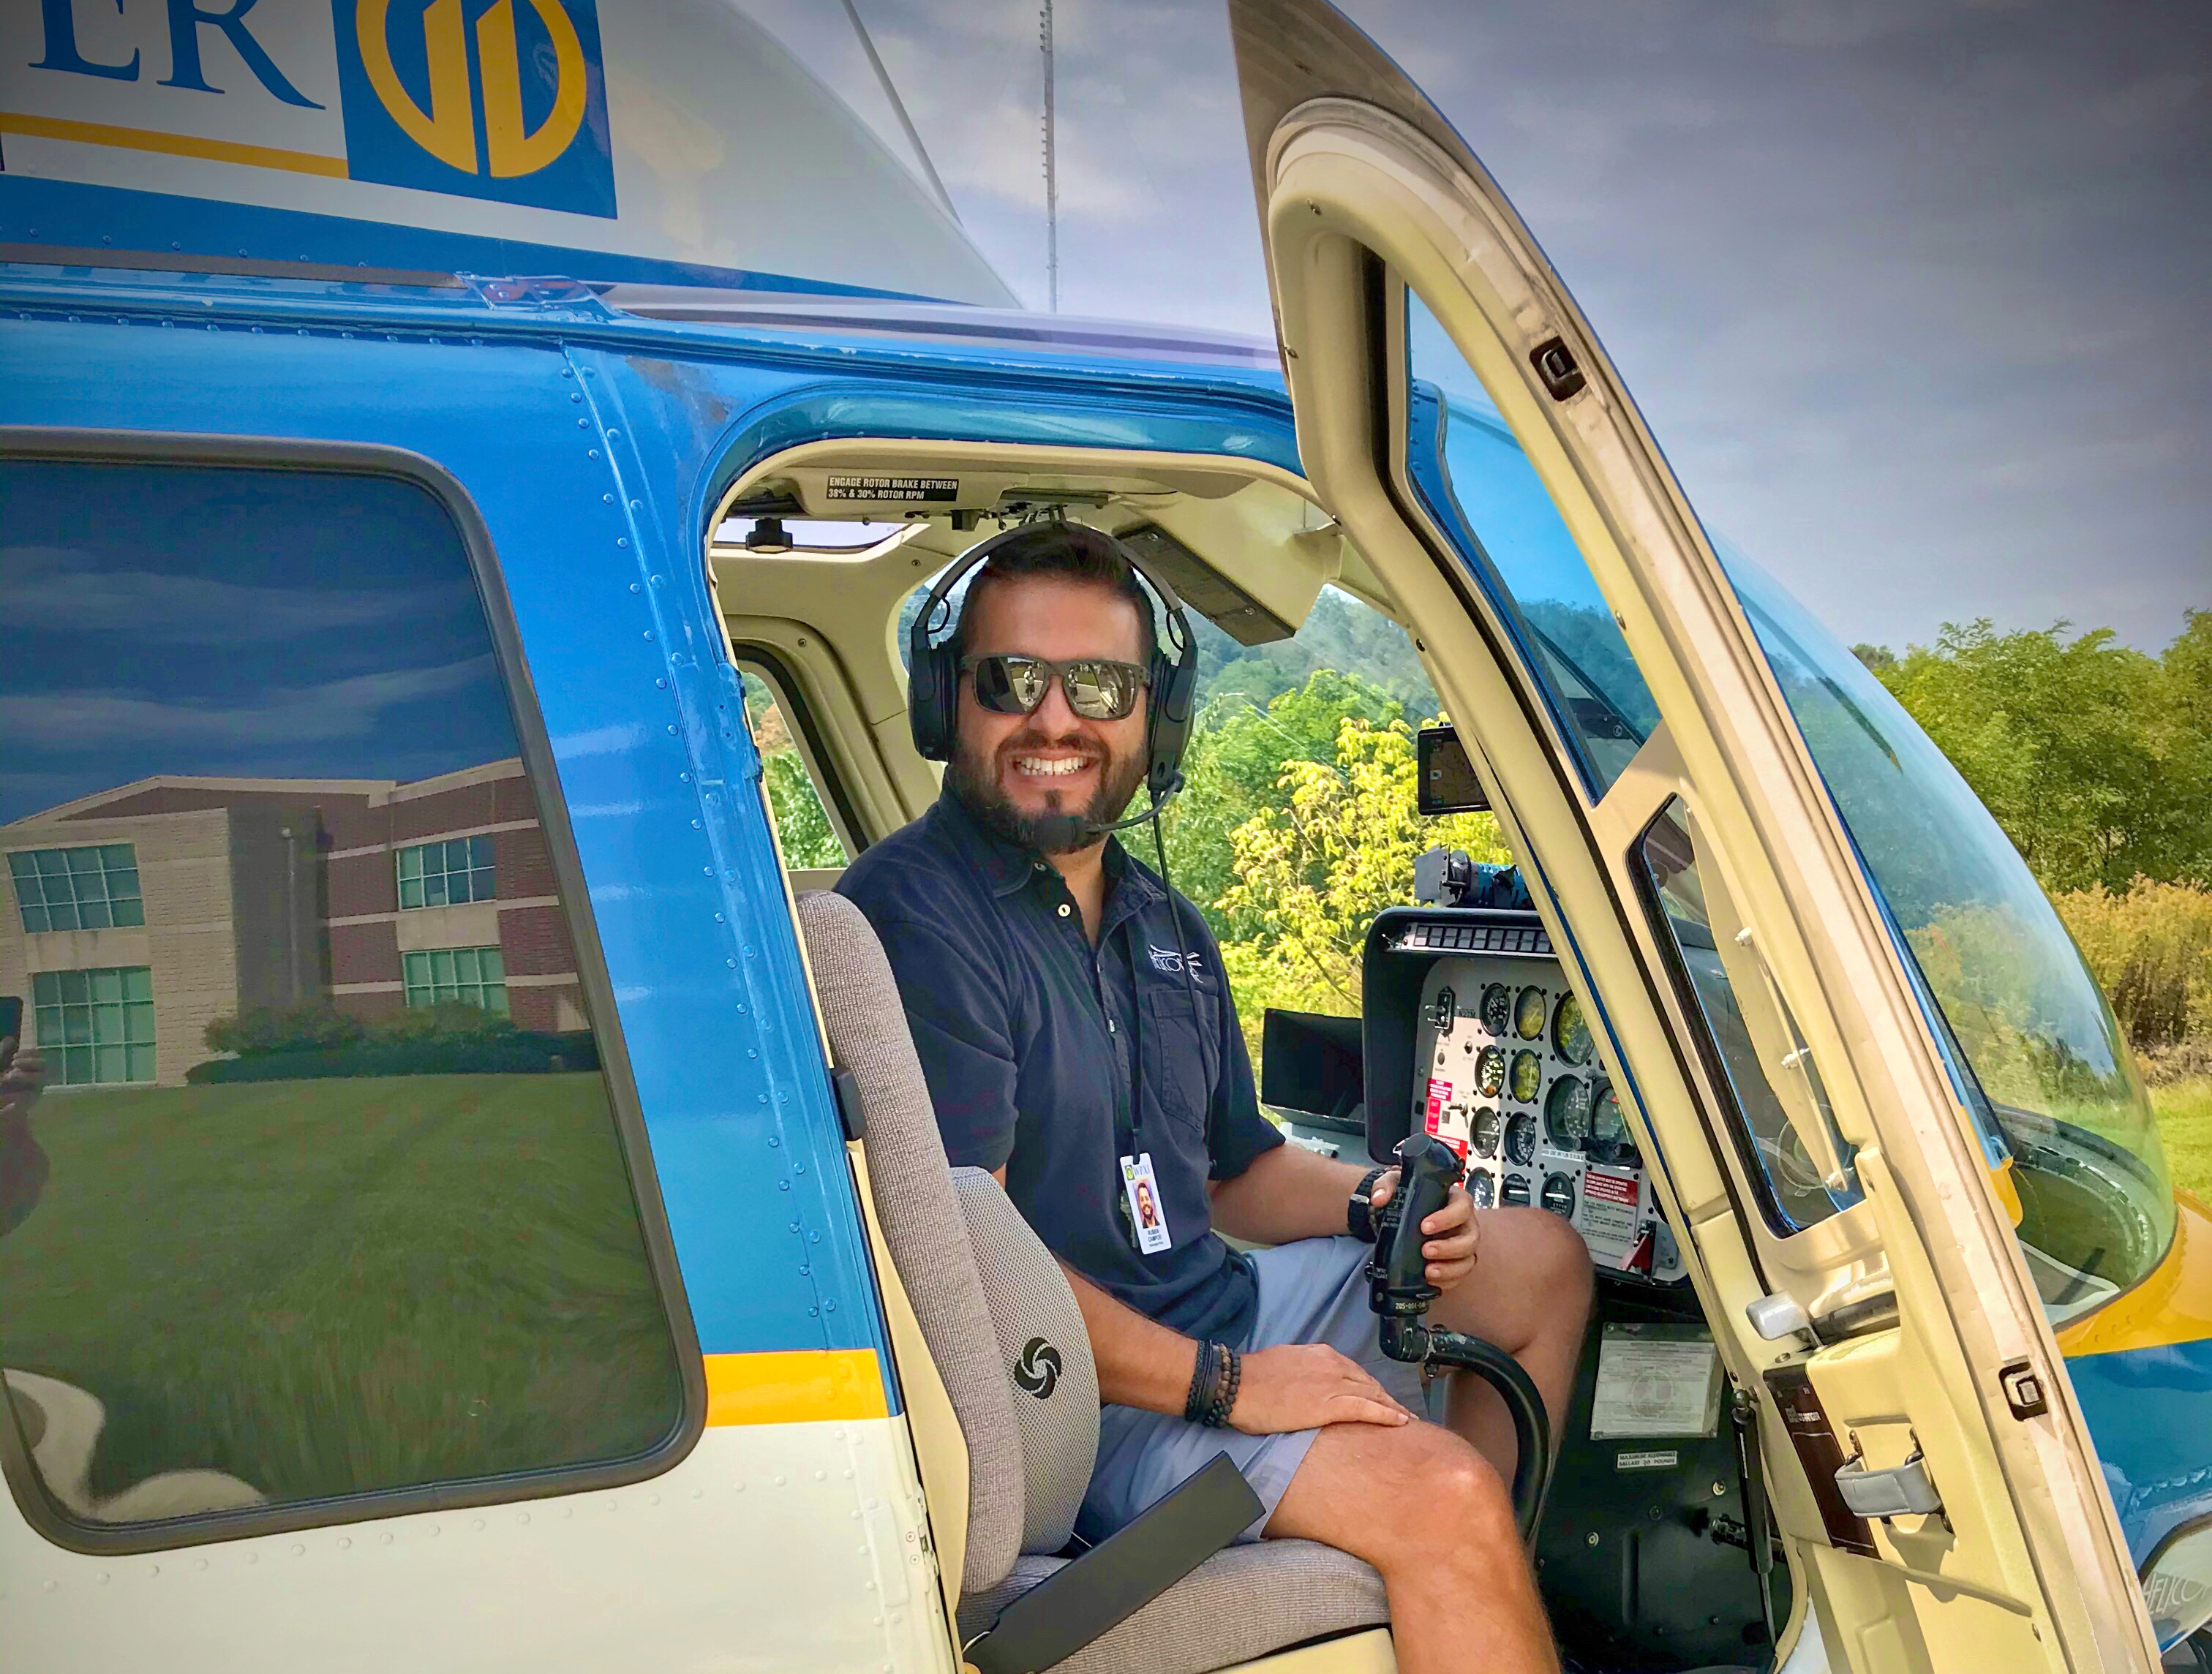 His Childhood Dream of Flying Became a Reality – Meet Ruben Campos!